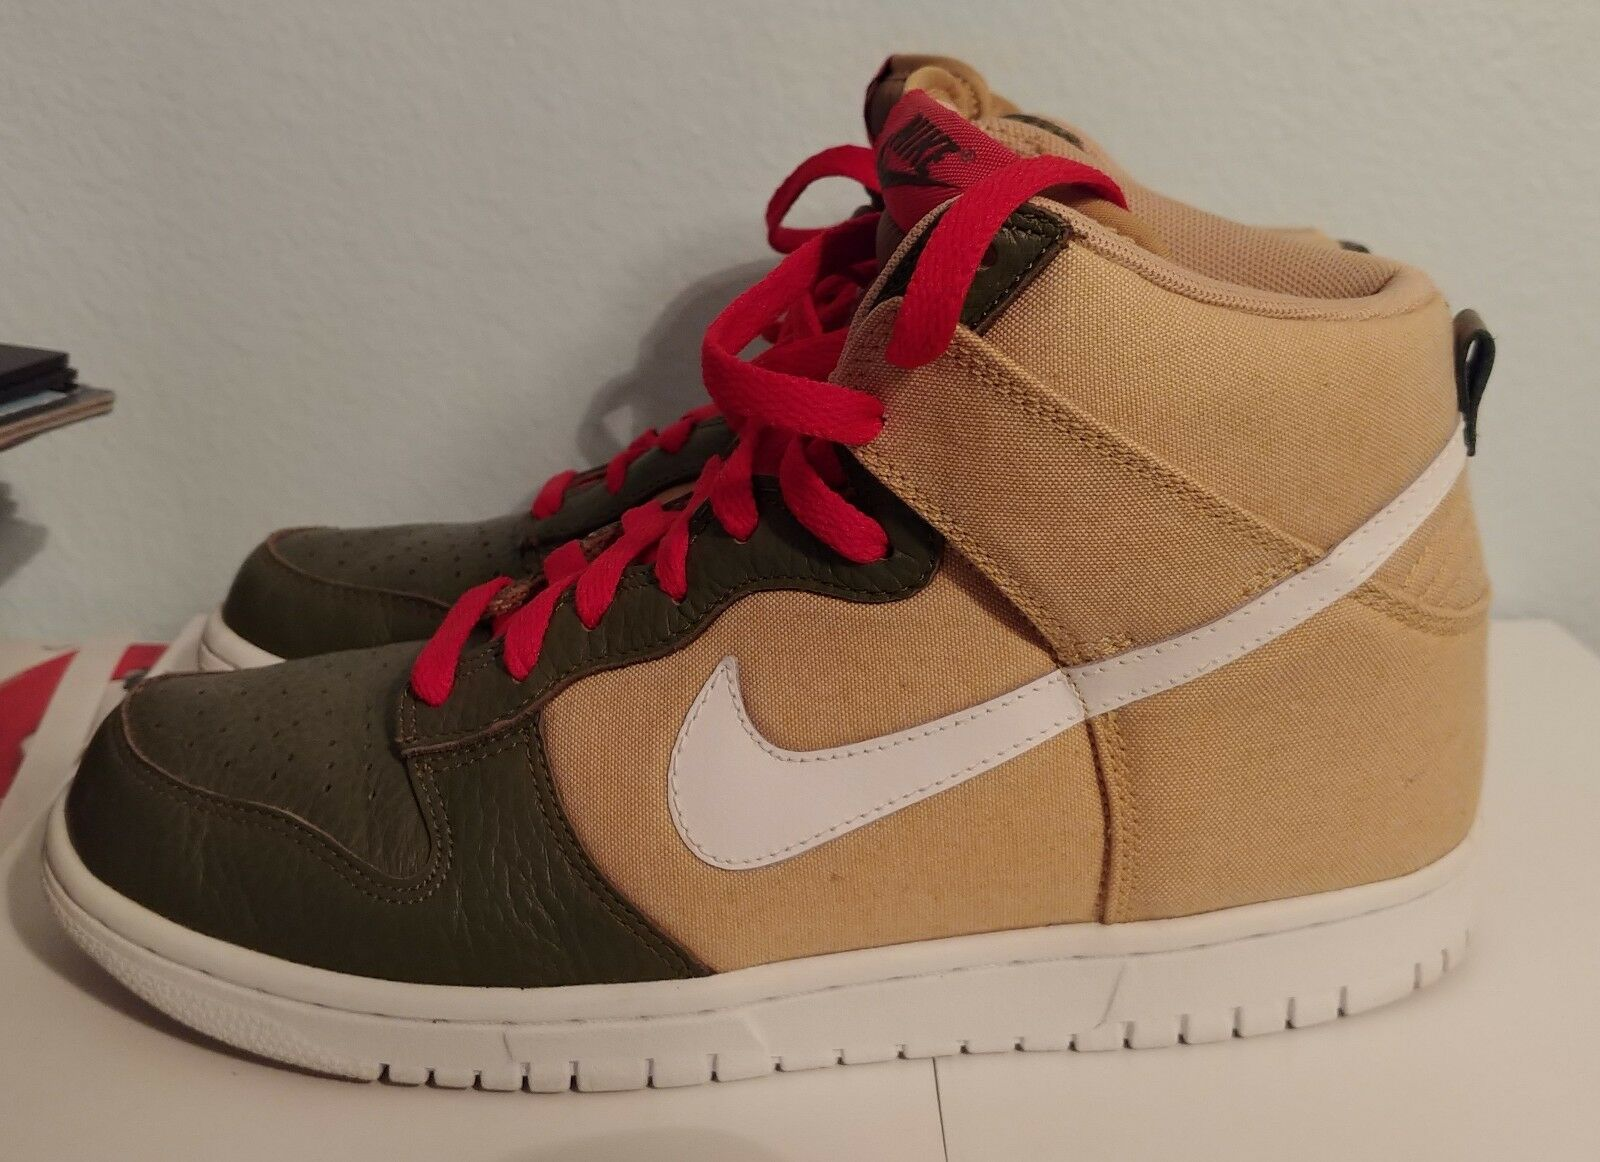 NIKE DUNK HIGH · 317982-704 · USED · 2012 · SZ 8.5 Uomo · NO BOX · VG CONDITION